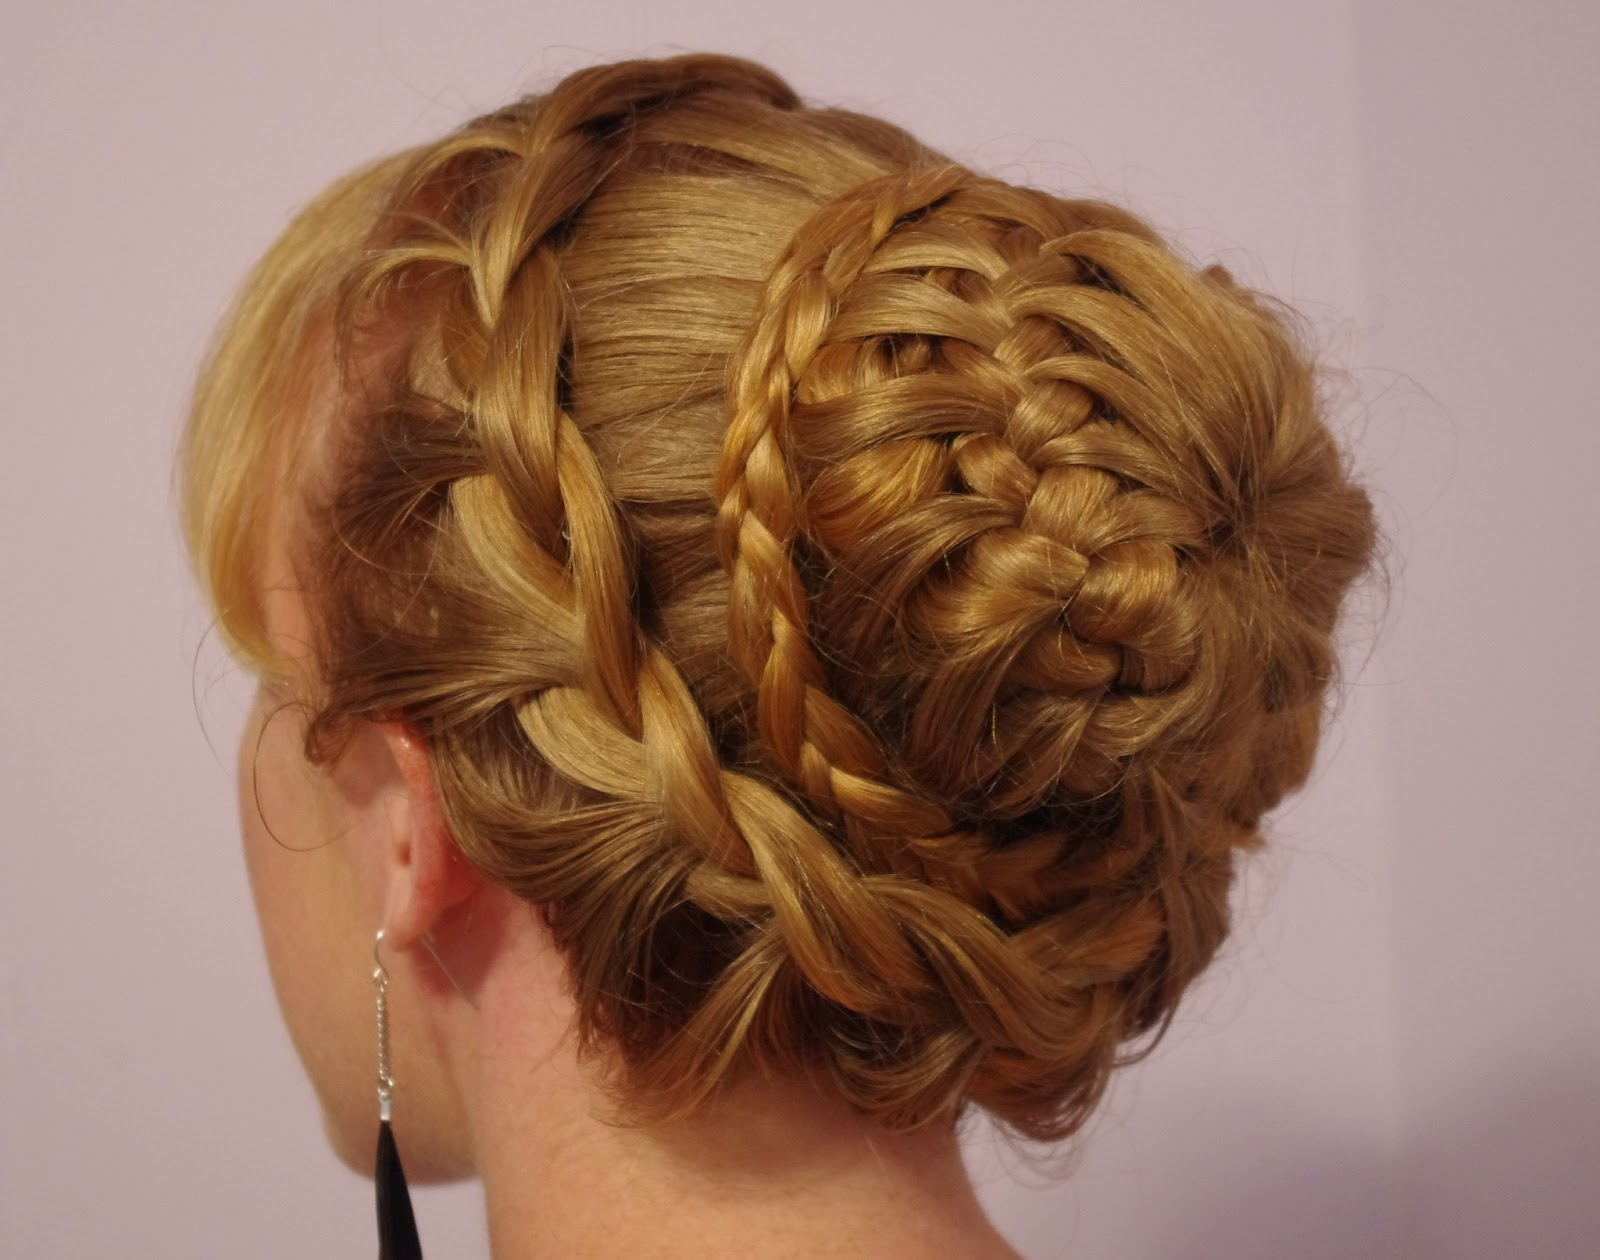 Braids & Hairstyles for Super Long Hair: Fancy Braided Bun